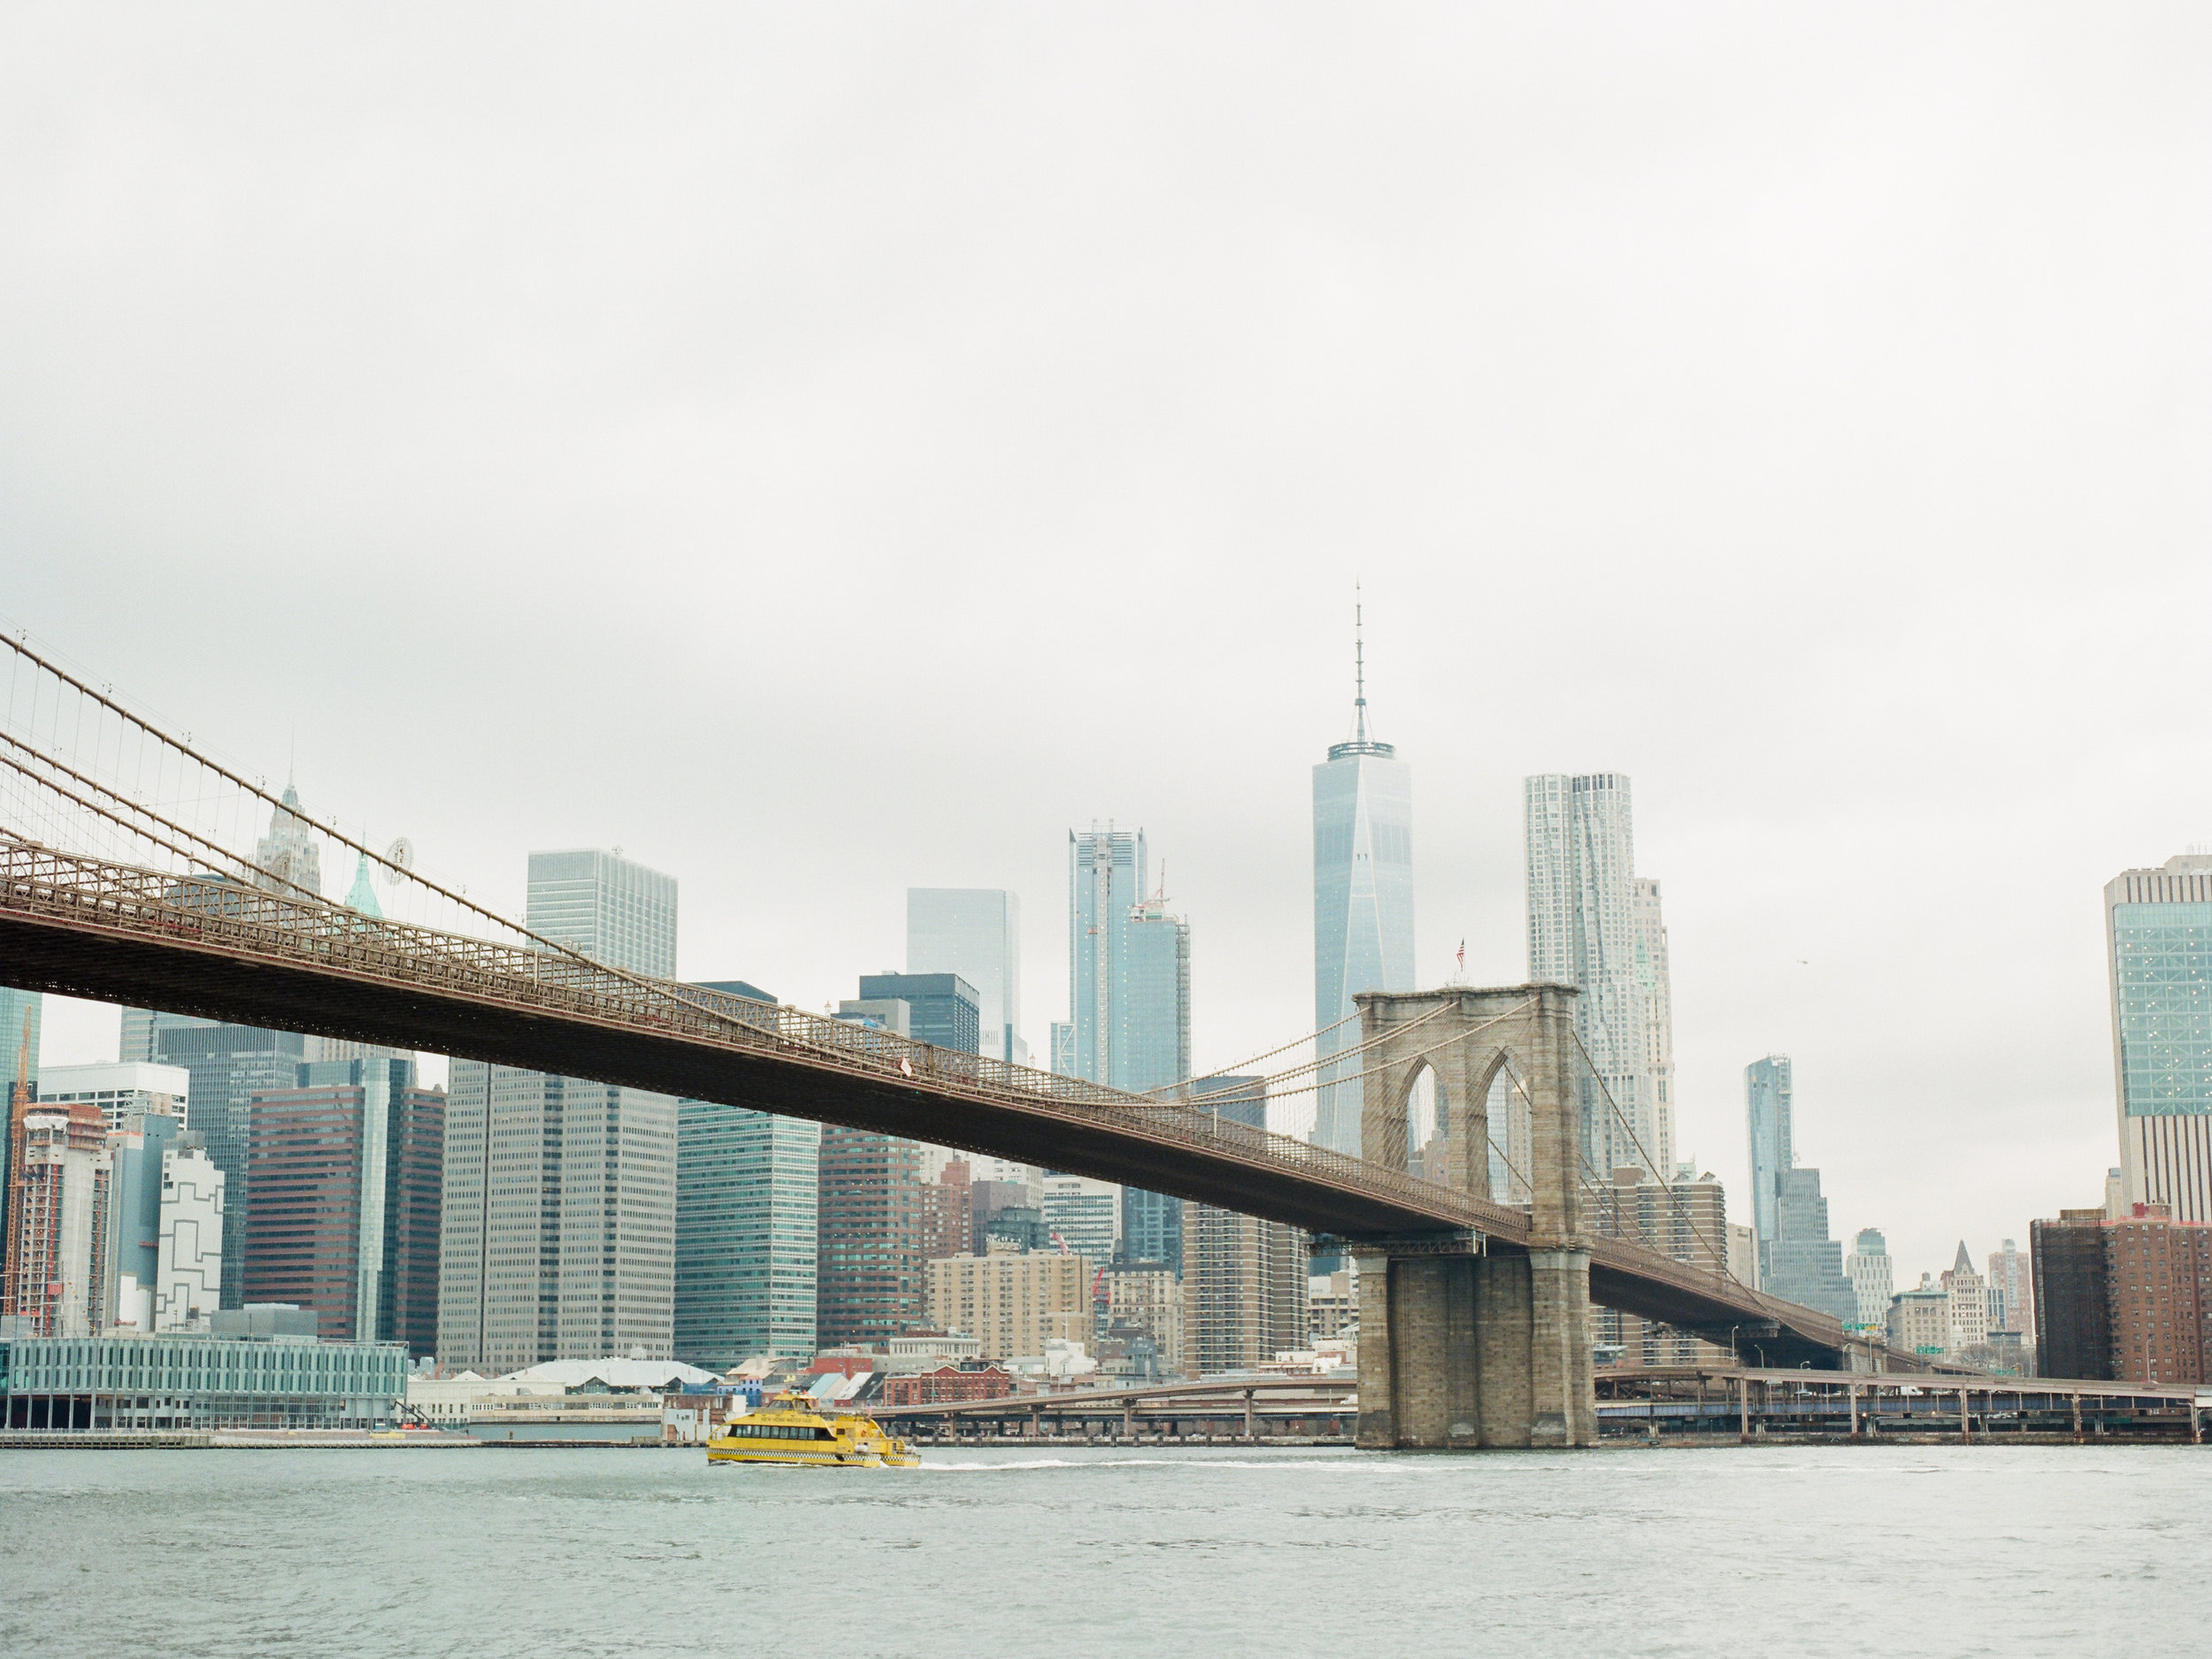 brooklyn-dumbo-new-york-engagement-photos-pictures-08.jpg